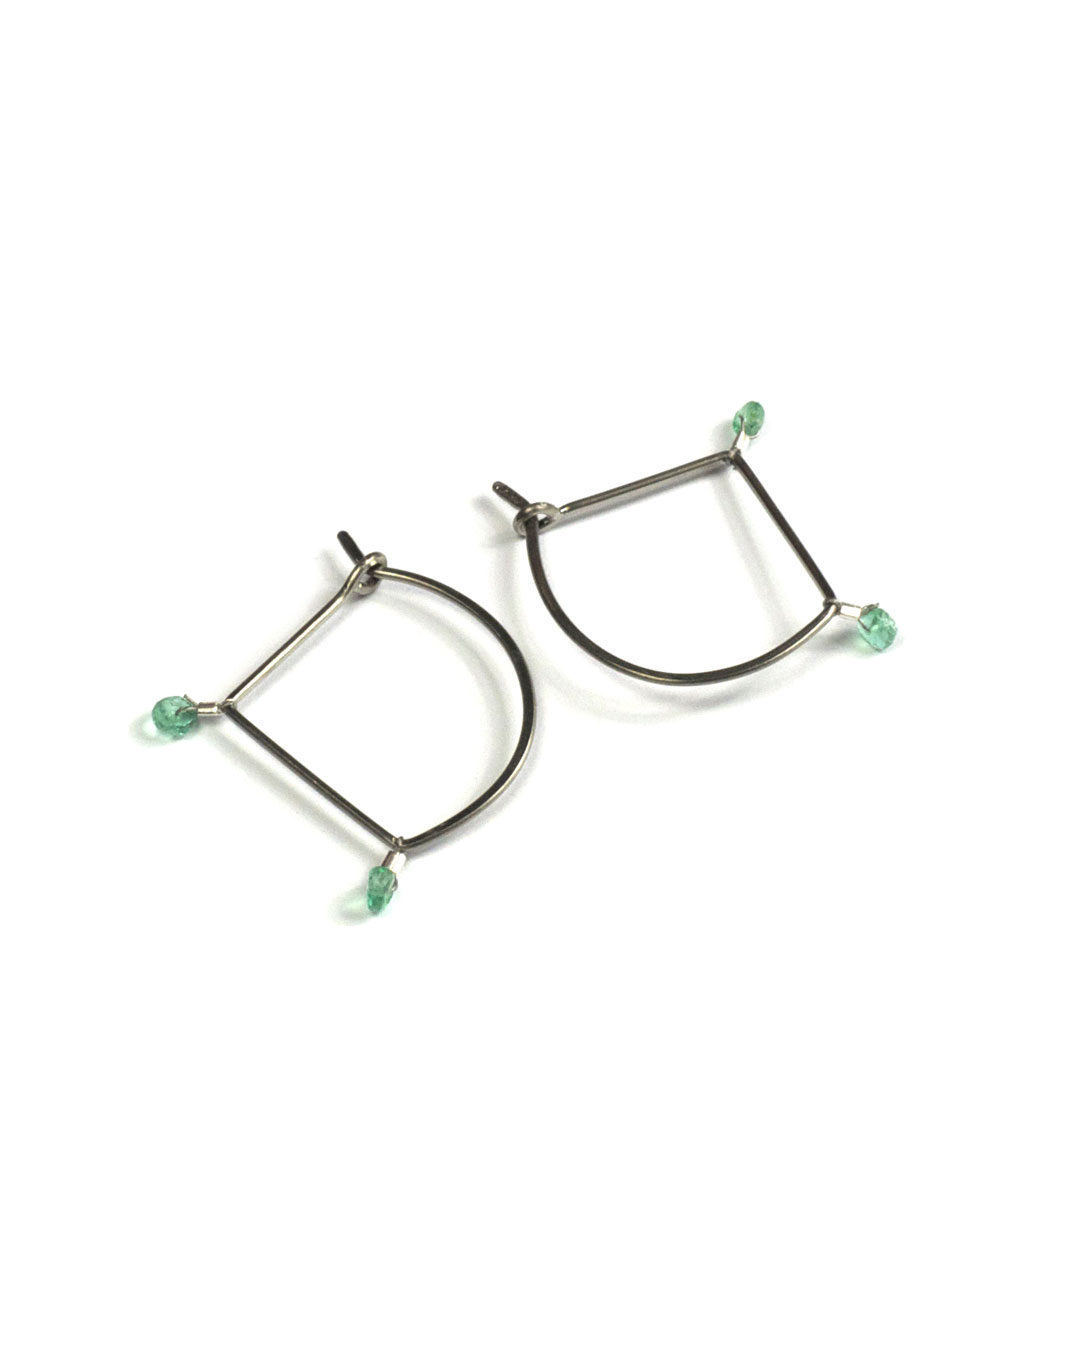 Annelies Planteijdt, Crystals with Emerald, 2017, earrings; gold, emerald, 22 x 20 x 2 mm, €210